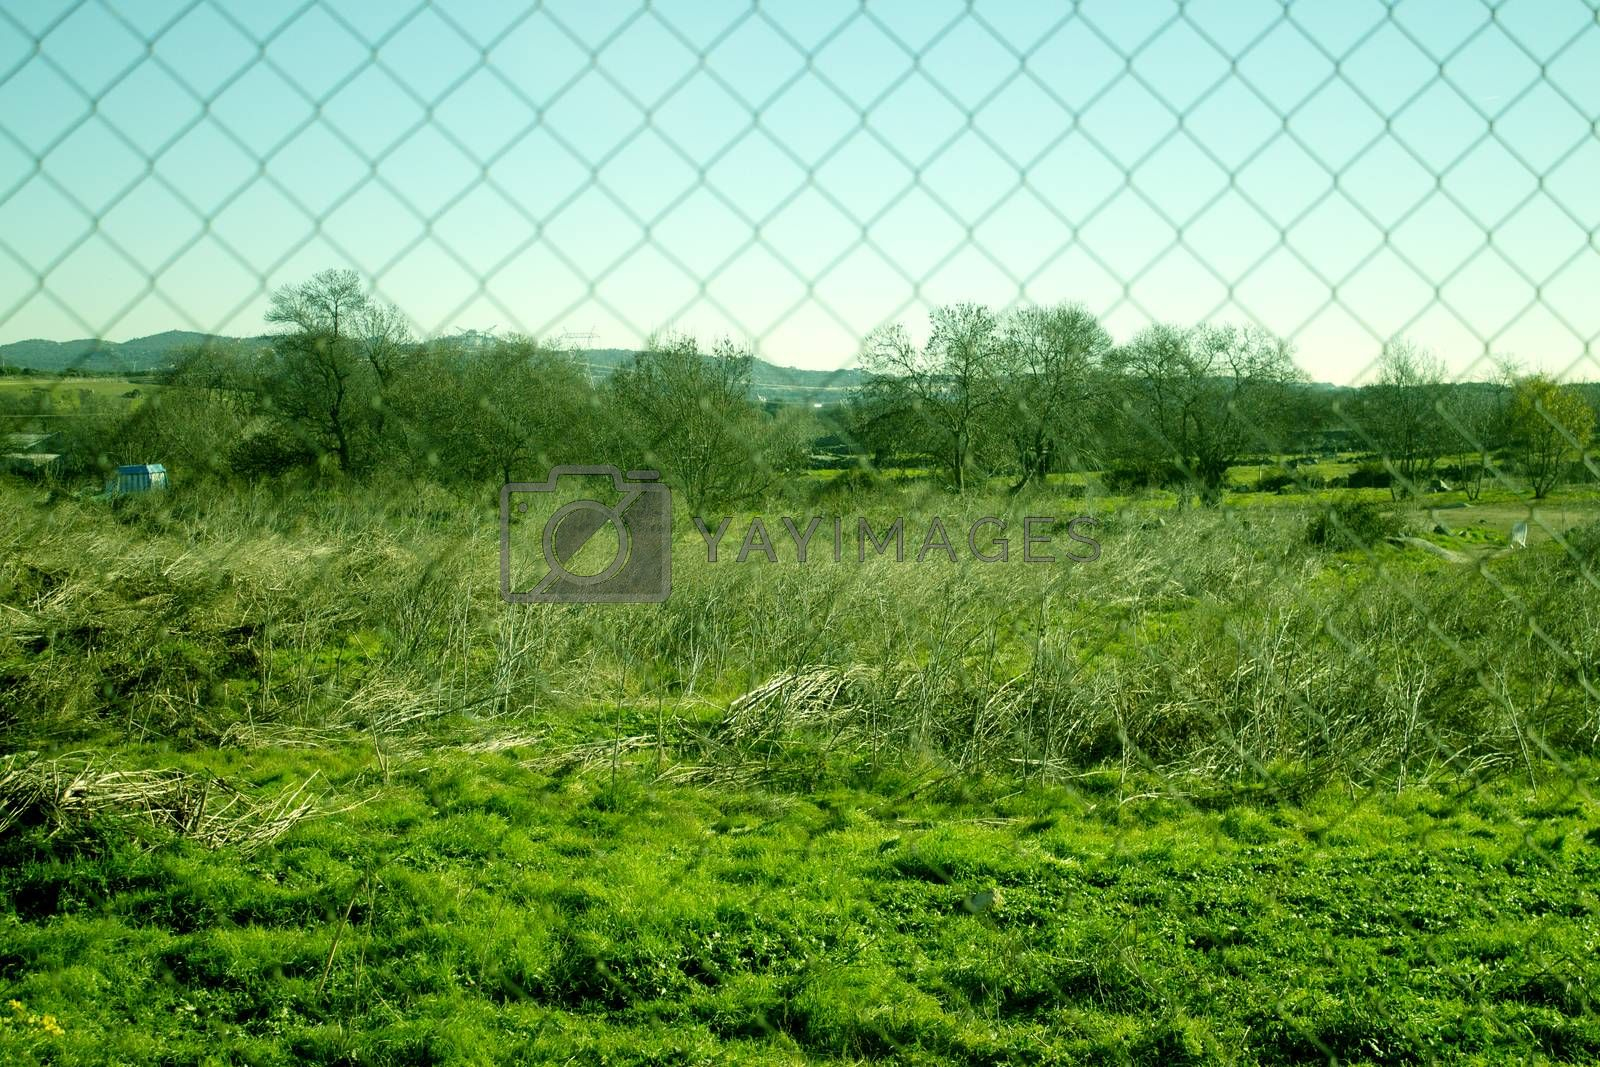 Field vision through a fence. No people